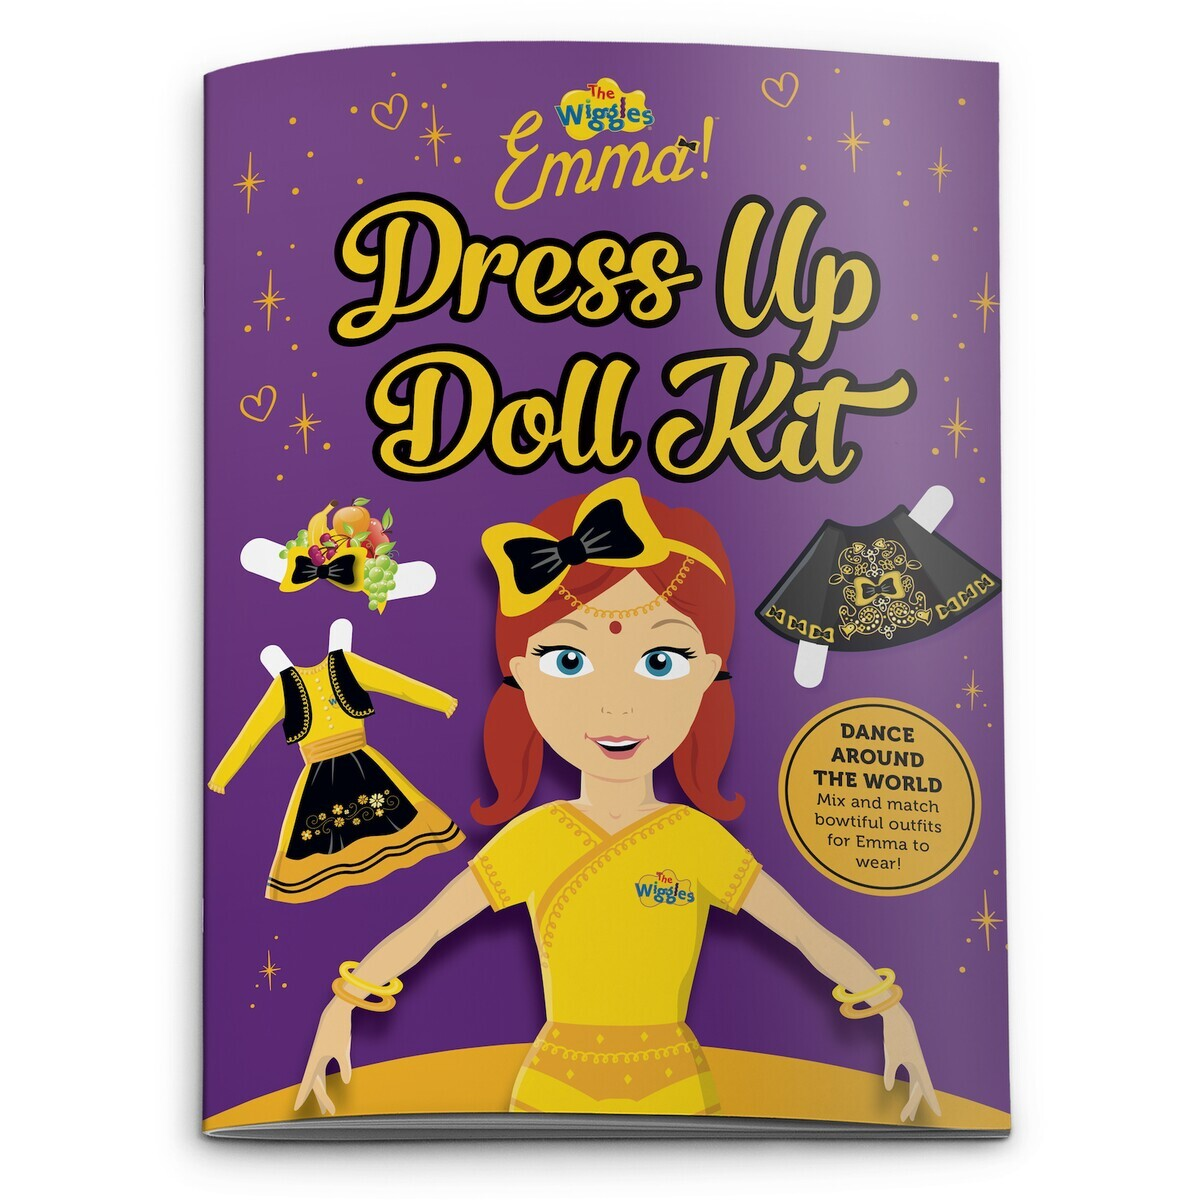 The Wiggles Emma Dress Up Doll Kit Book